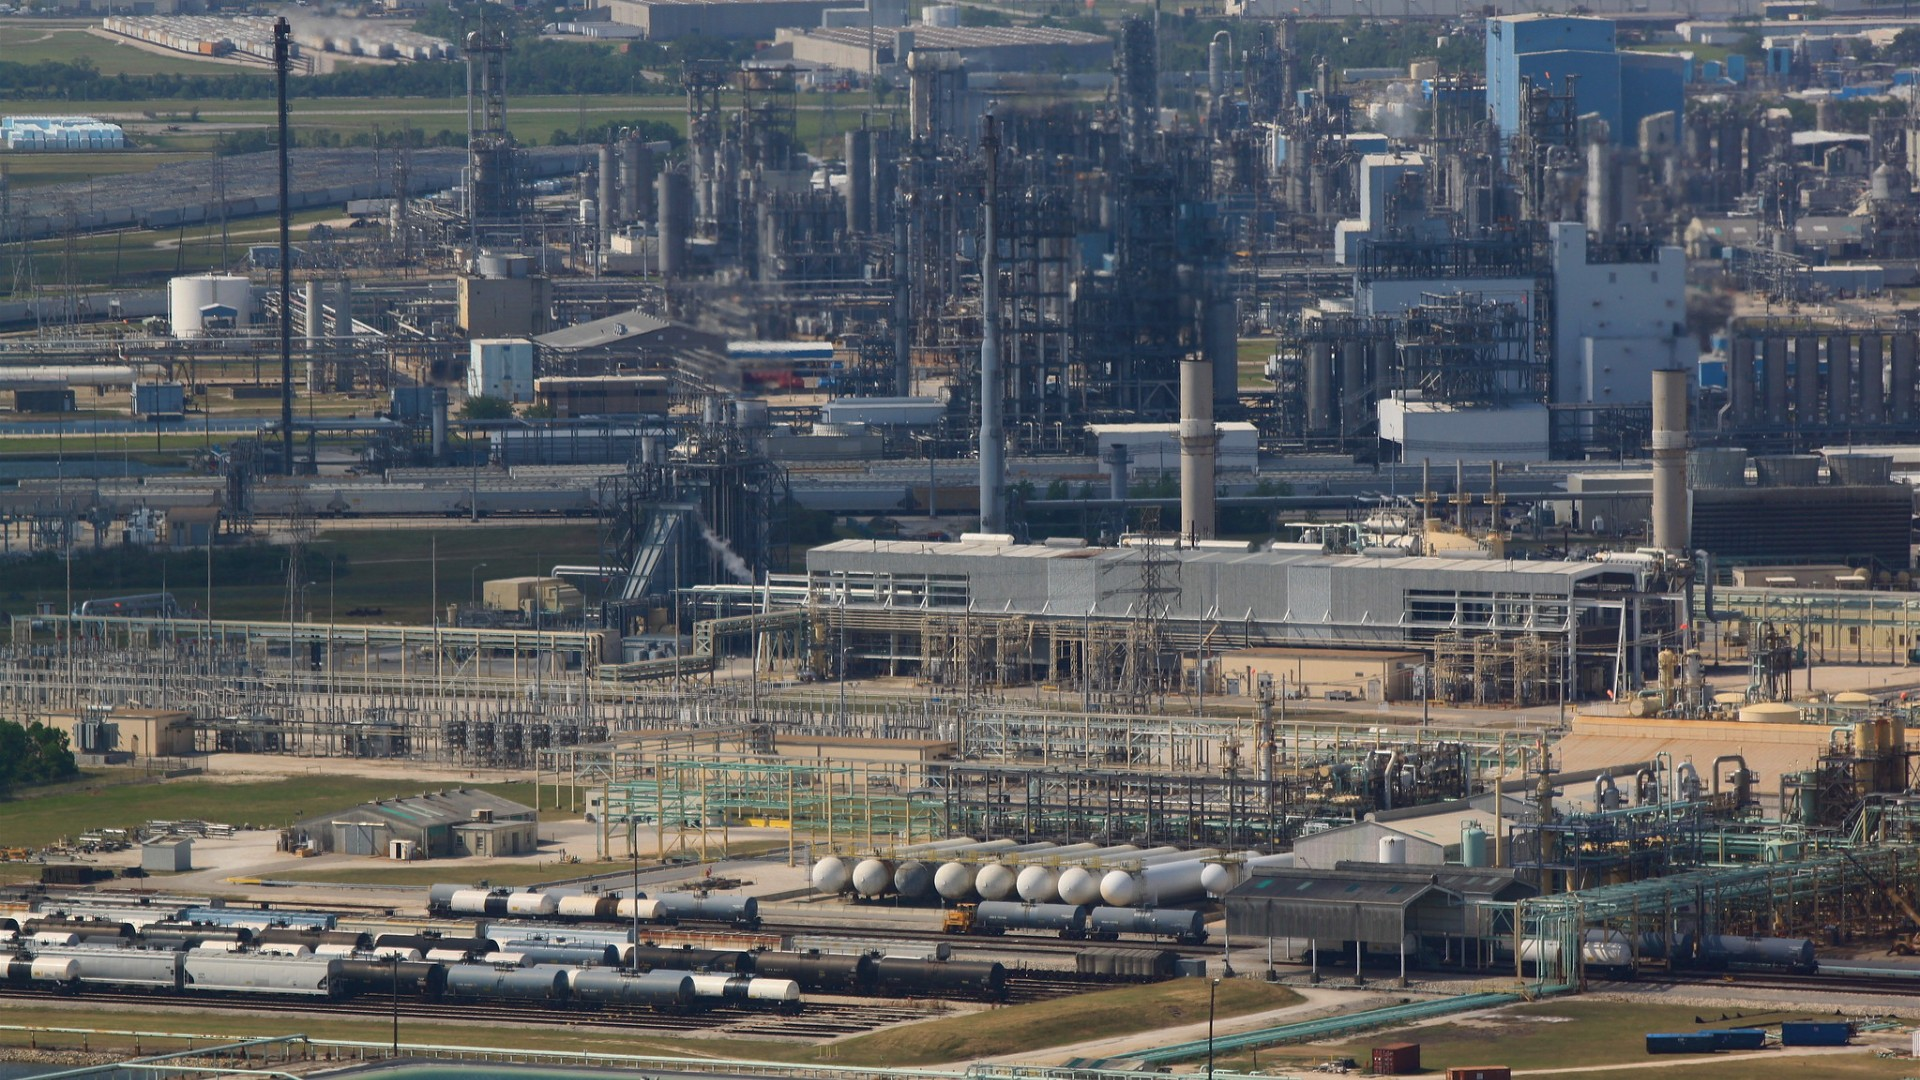 petrochemical facilities